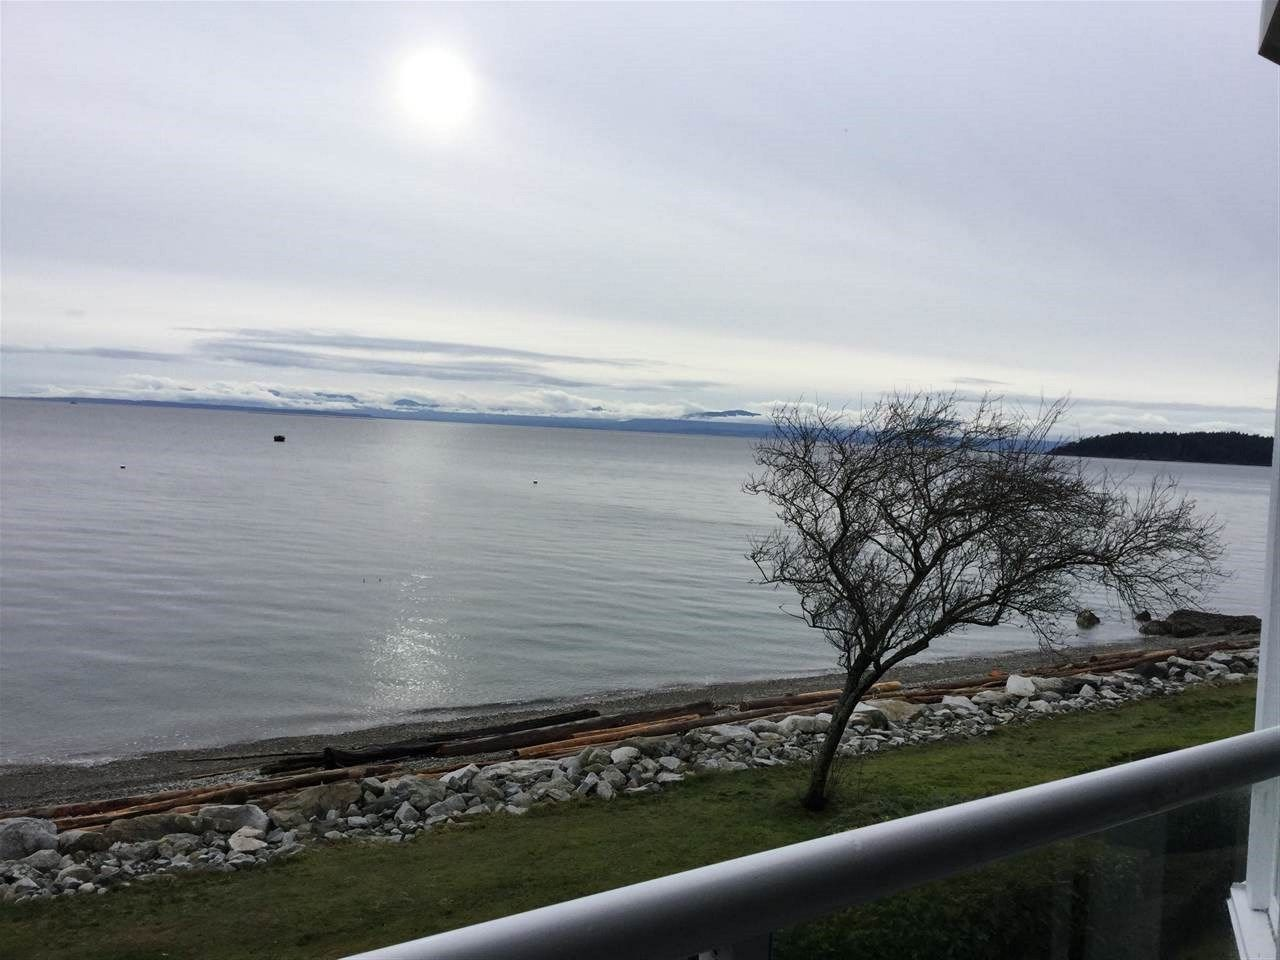 Main Photo: 202 5470 INLET Avenue in Sechelt: Sechelt District Condo for sale (Sunshine Coast)  : MLS® # R2228831